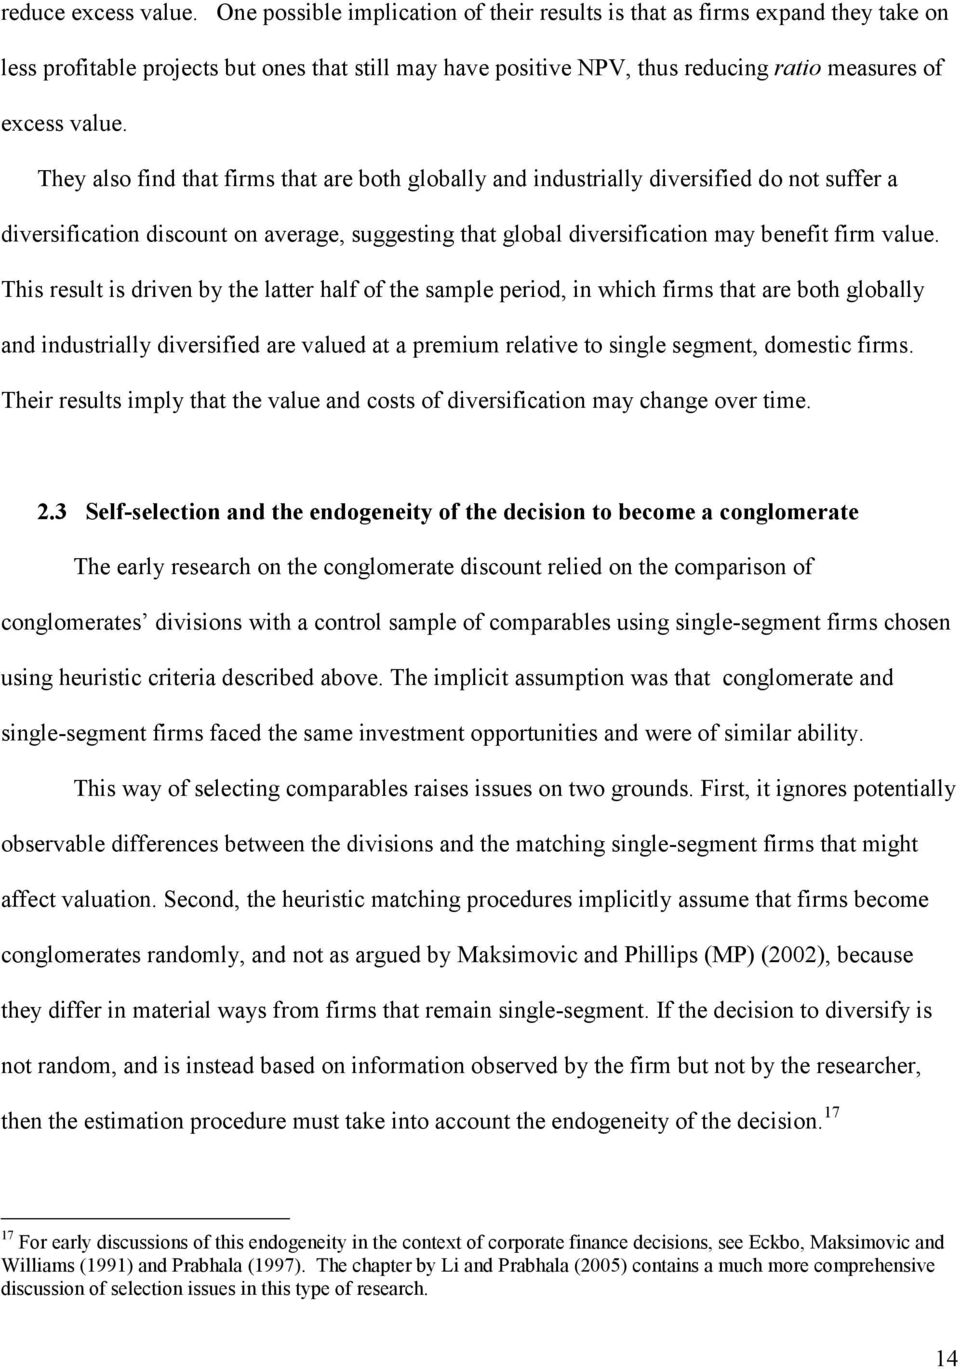 They also find that firms that are both globally and industrially diversified do not suffer a diversification discount on average, suggesting that global diversification may benefit firm value.